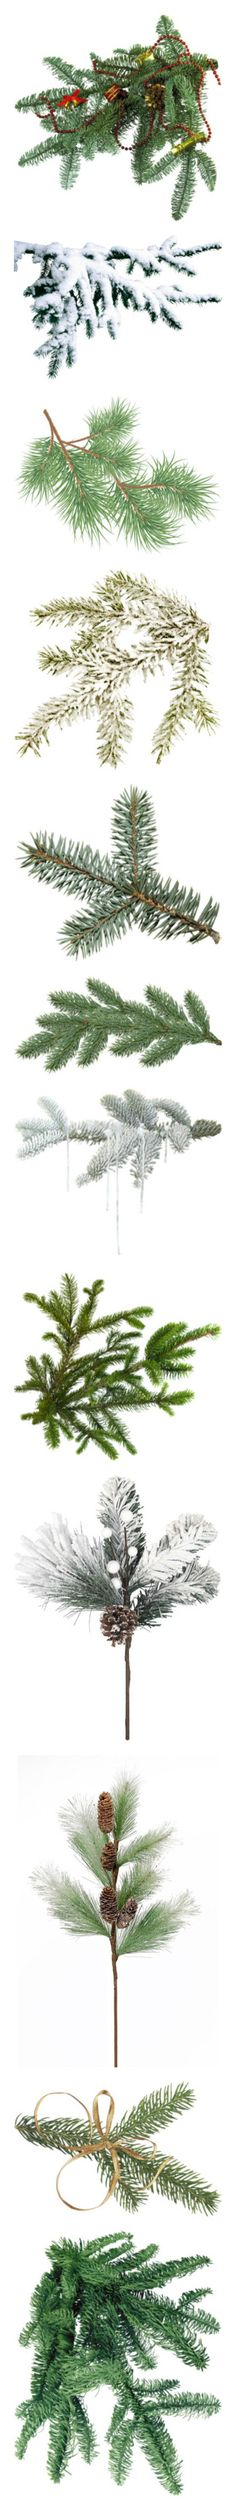 """""""Christmas 6 - picks, tubes, photos"""" by franceseattle ❤ liked on Polyvore featuring christmas, natale, winter, trees, backgrounds, snow, effect, xmas, filler and flowers/plants"""